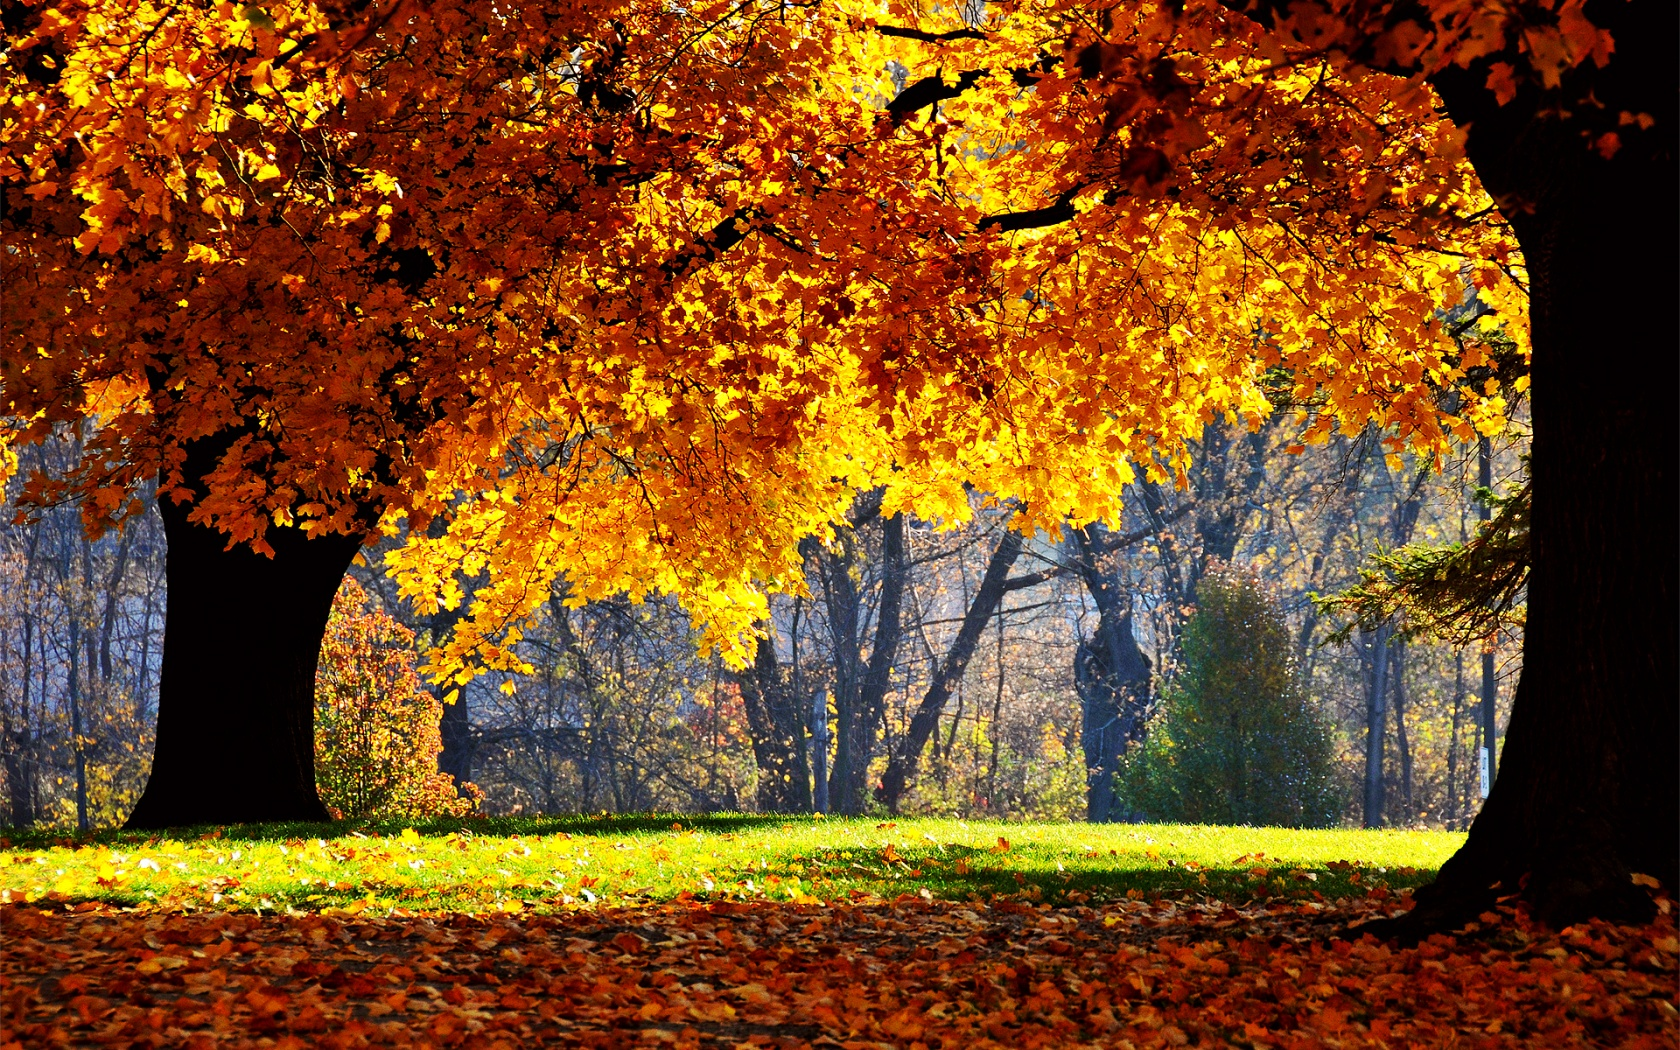 autumn wallpapers hd best - photo #35